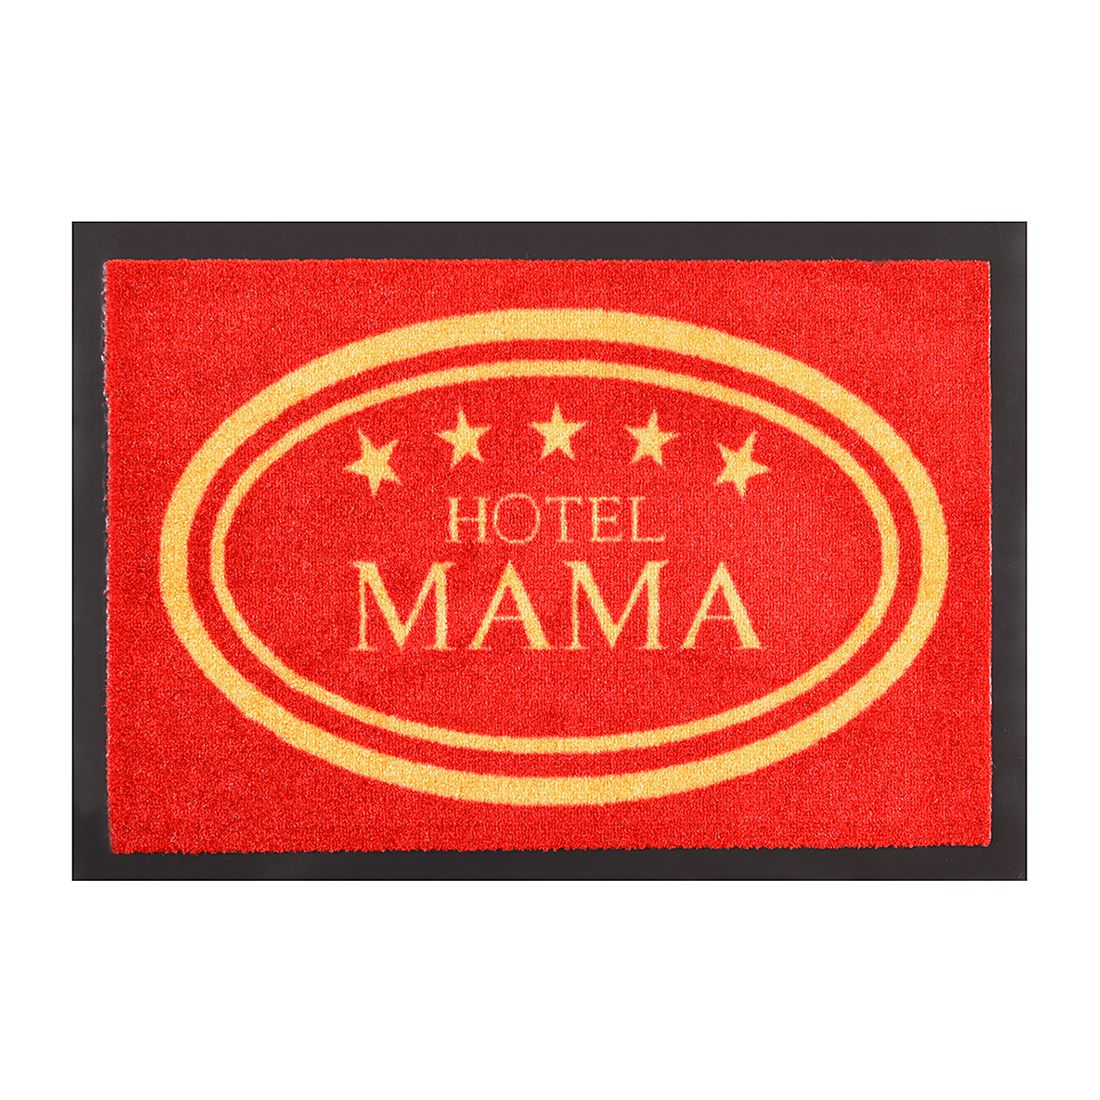 Deurmat Printy Hotel Mama - rood/geel, Hanse Home Collection